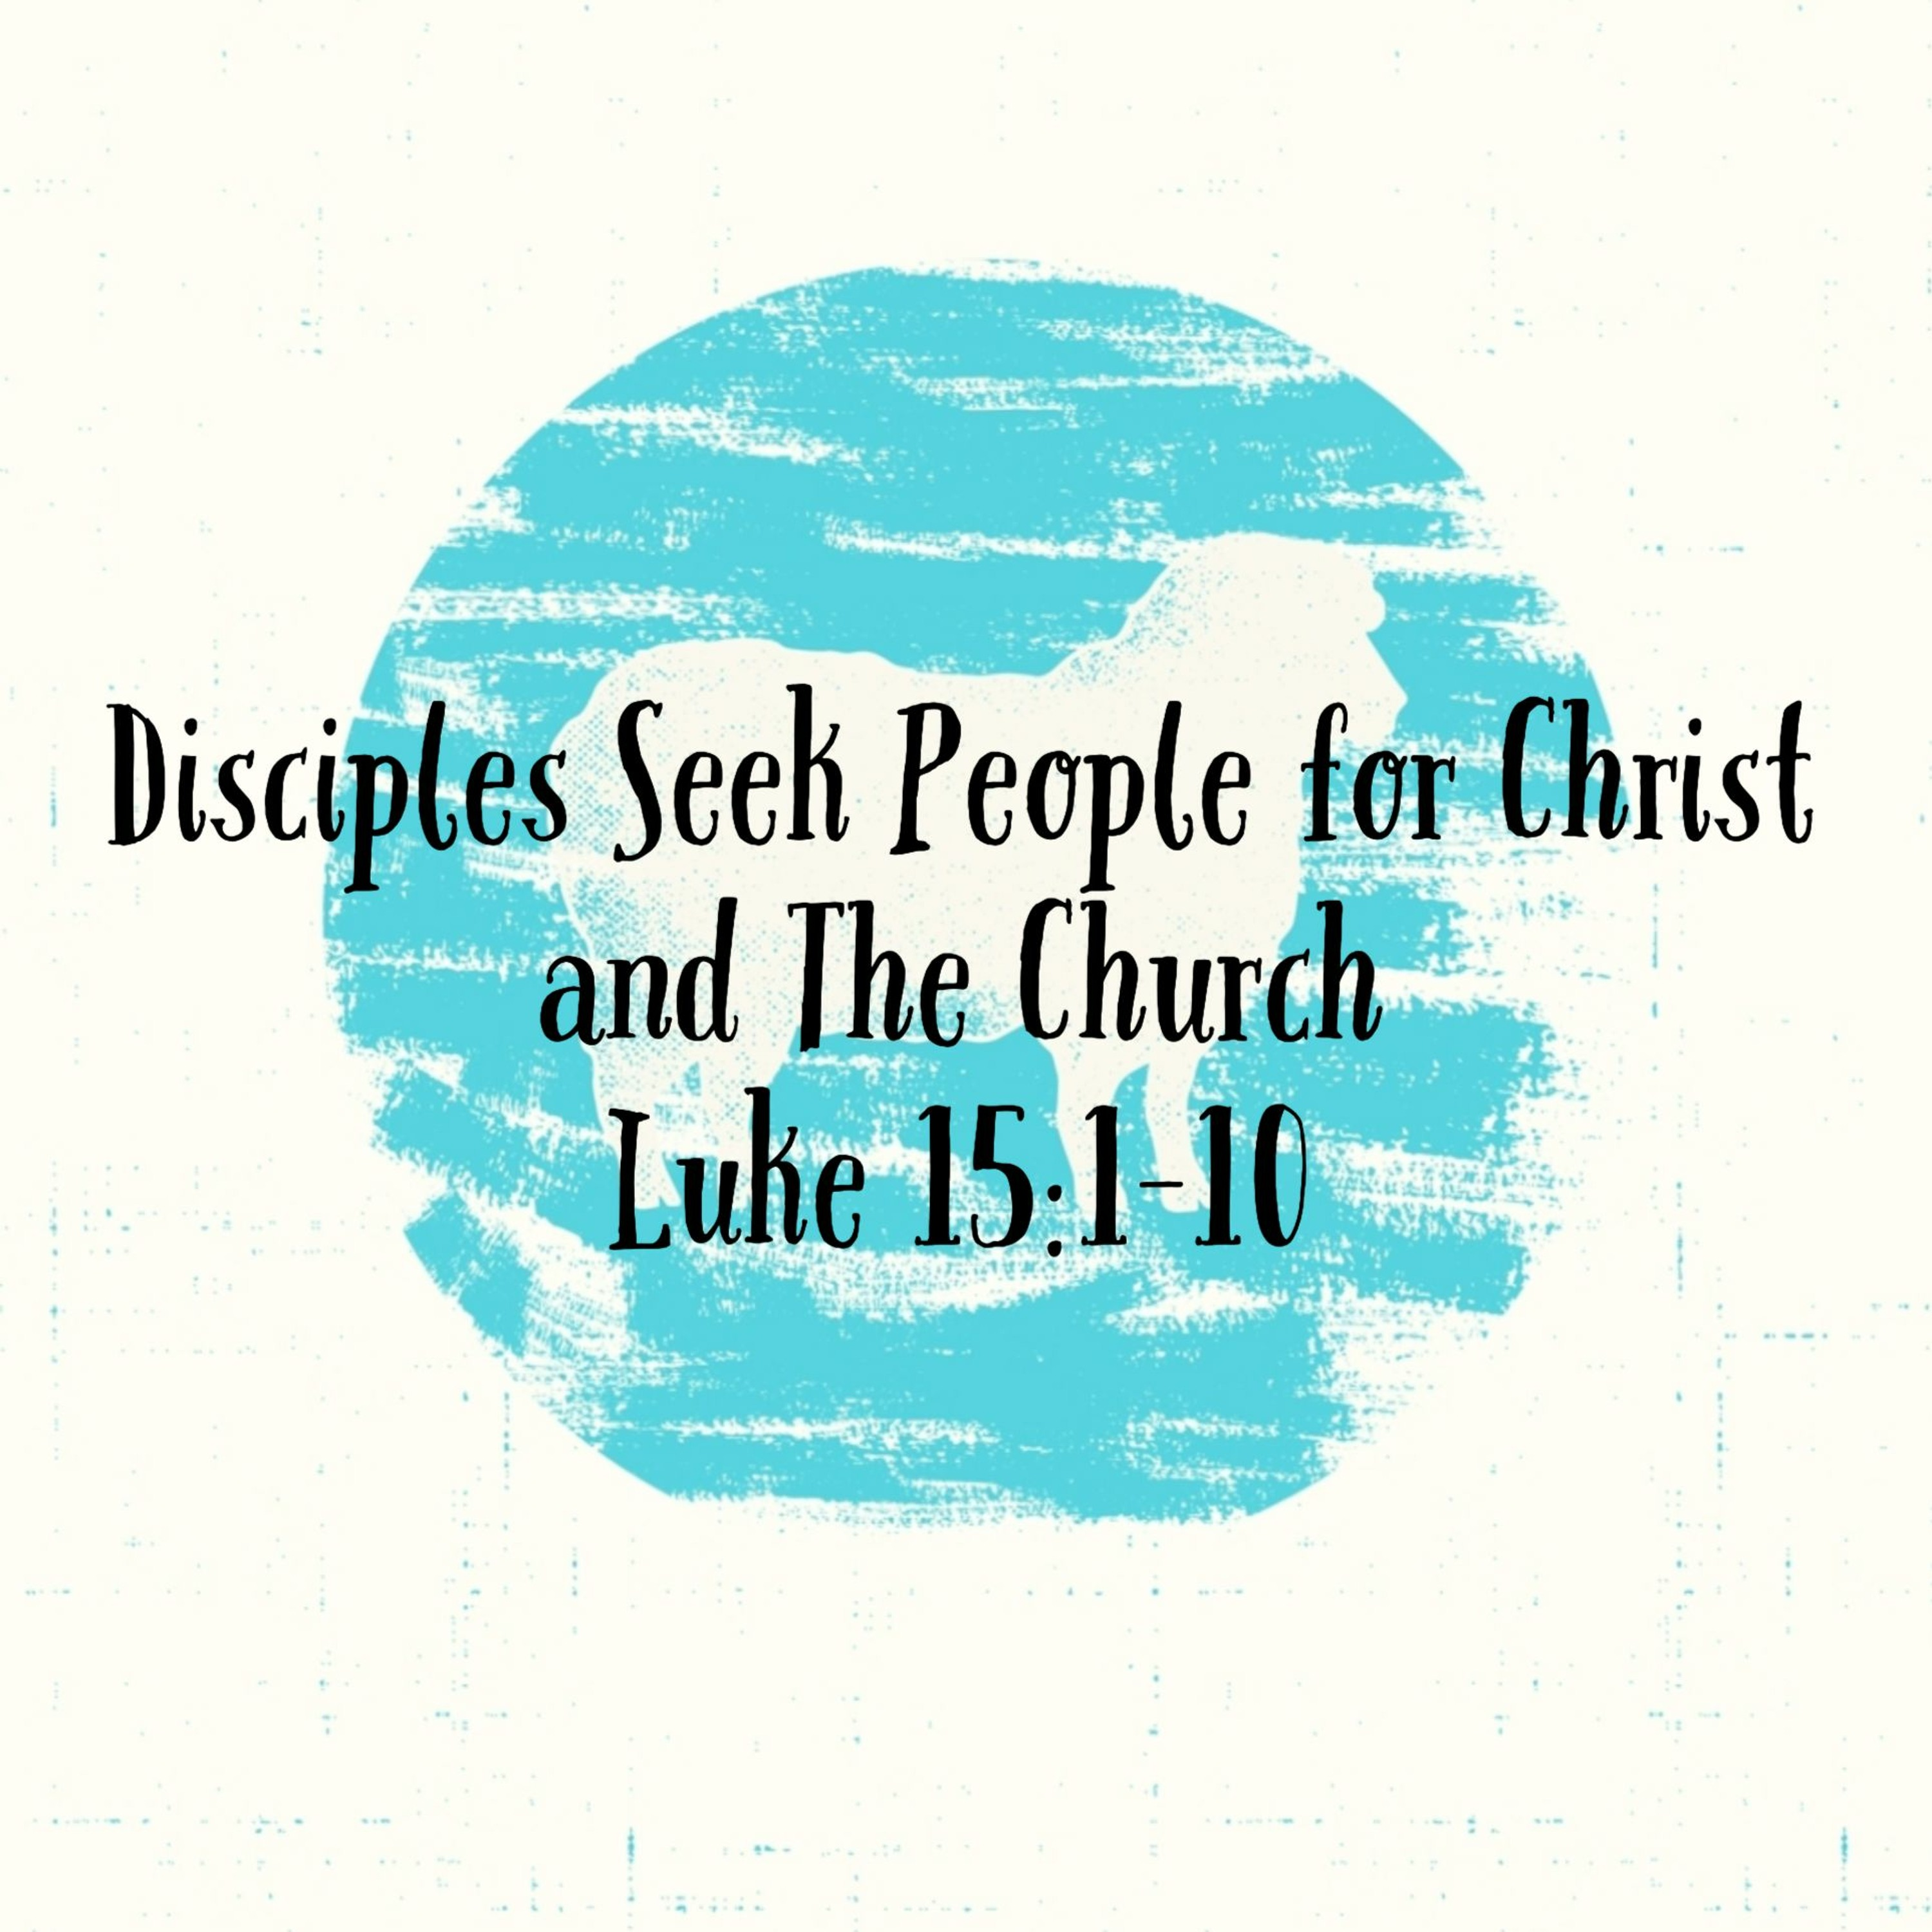 Disciples Seek People for Christ and The Church